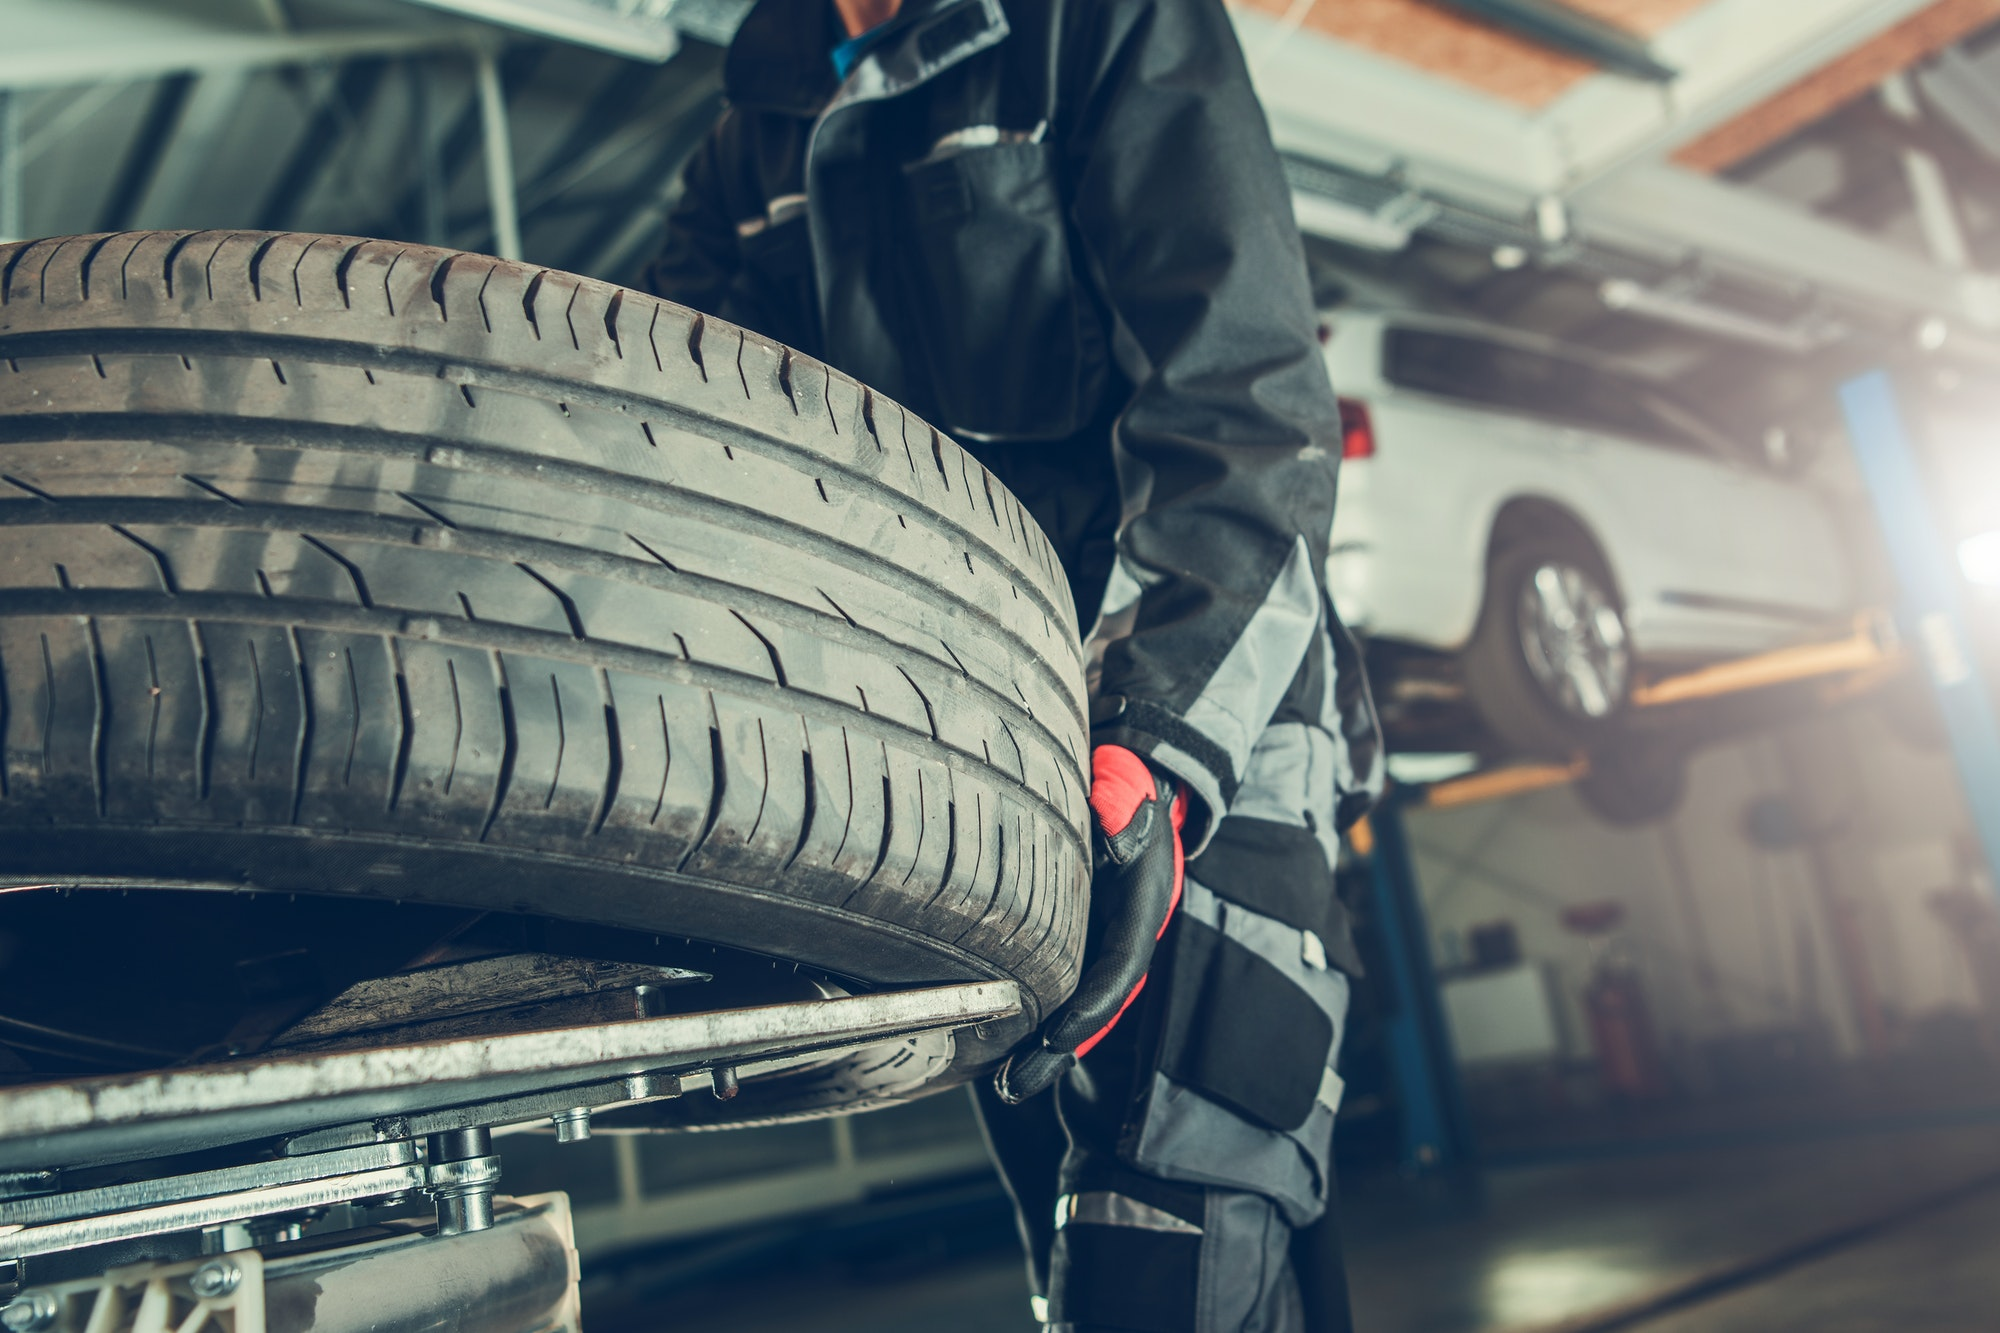 Vulcanizer Tire Replacement